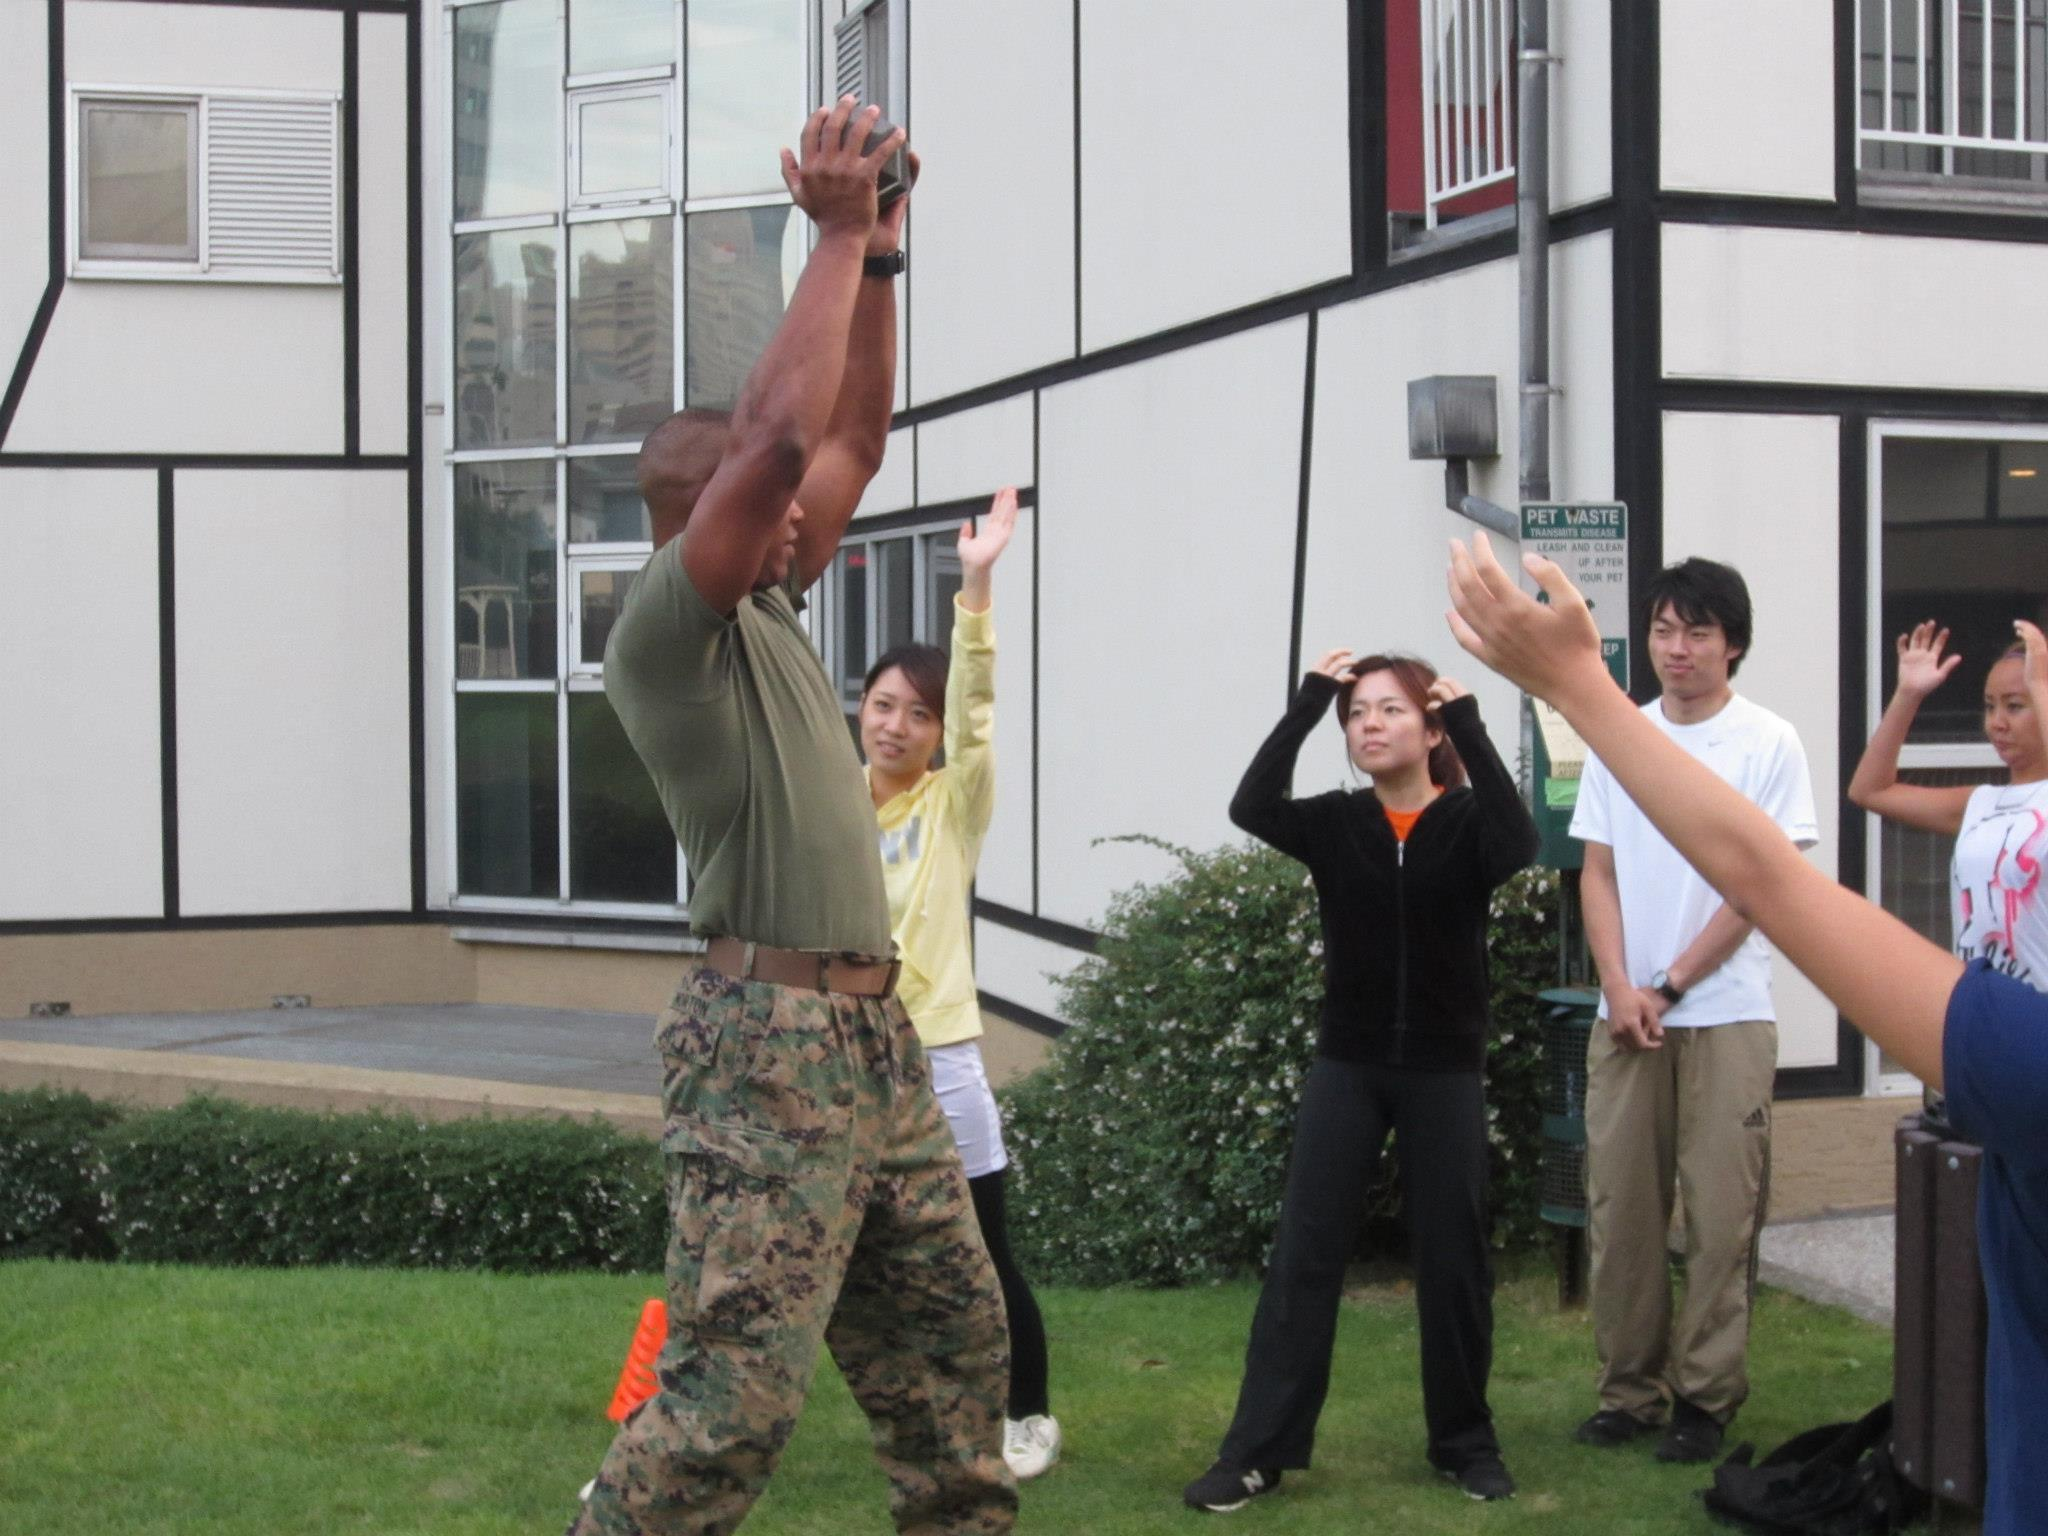 2012/10/8 A Boot Camp with the U.S. Marines: Learn About the Marine